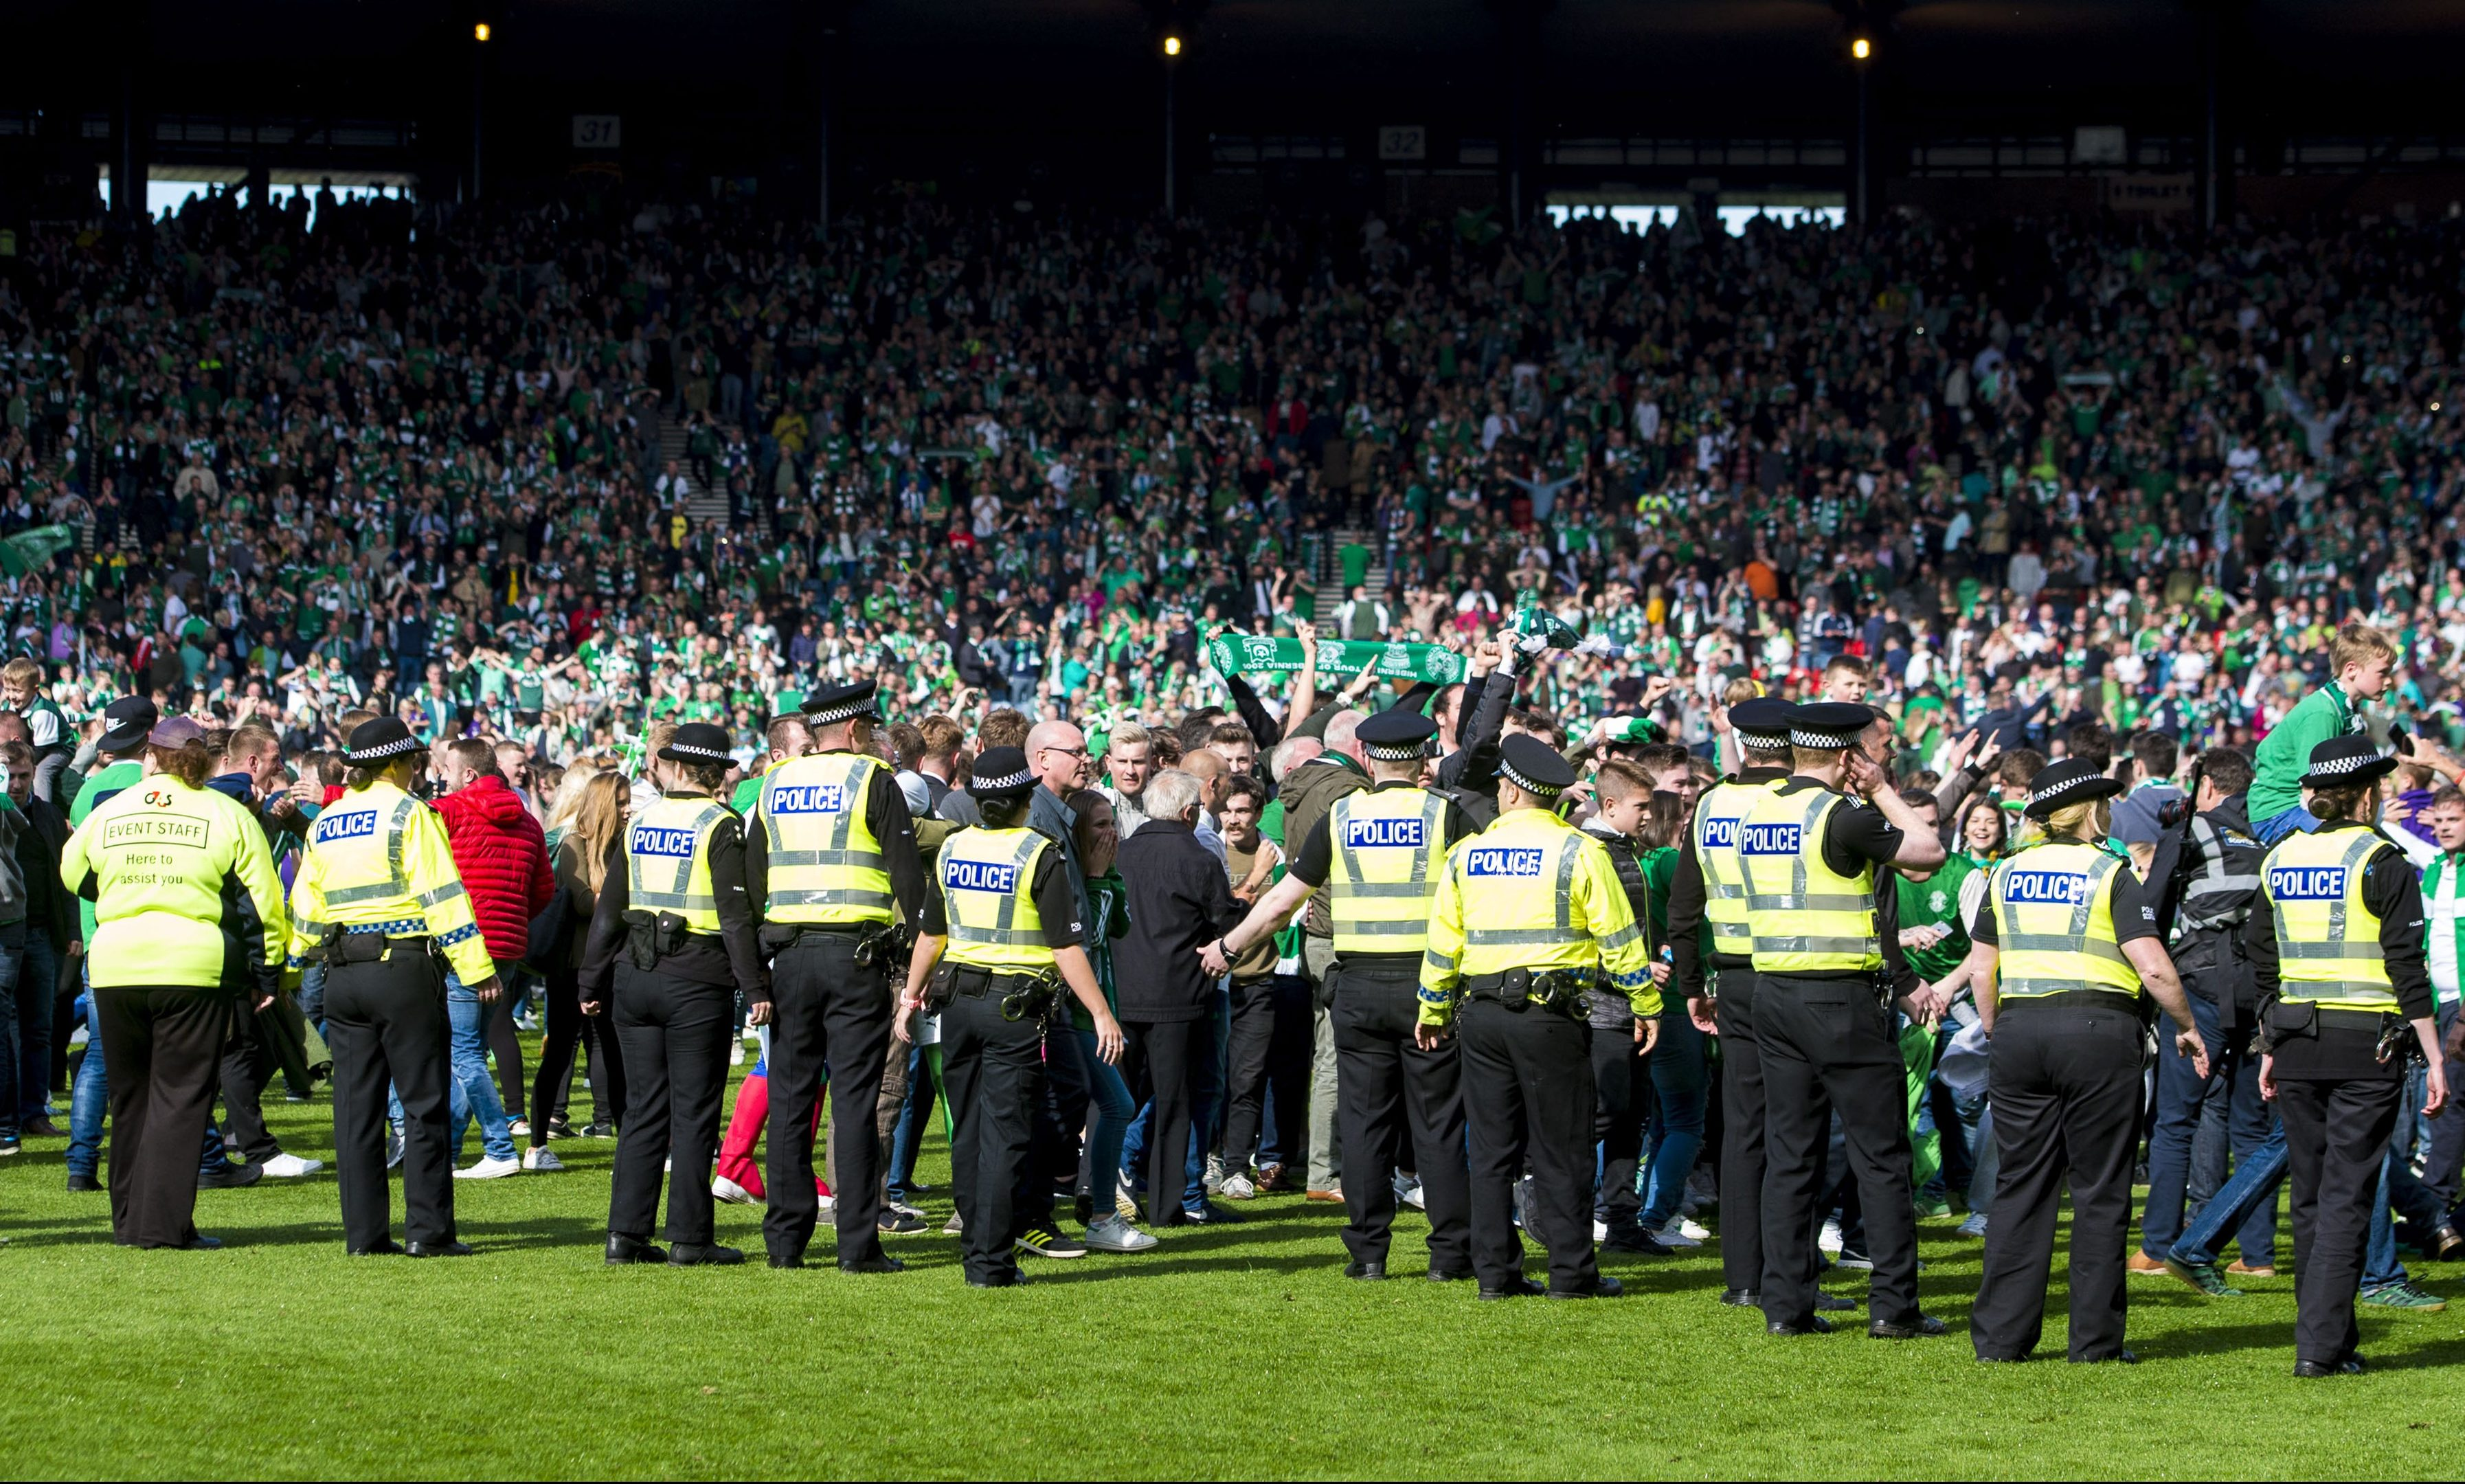 Police work to restore order after fans invaded the pitch at the end of the Scottish Cup final.